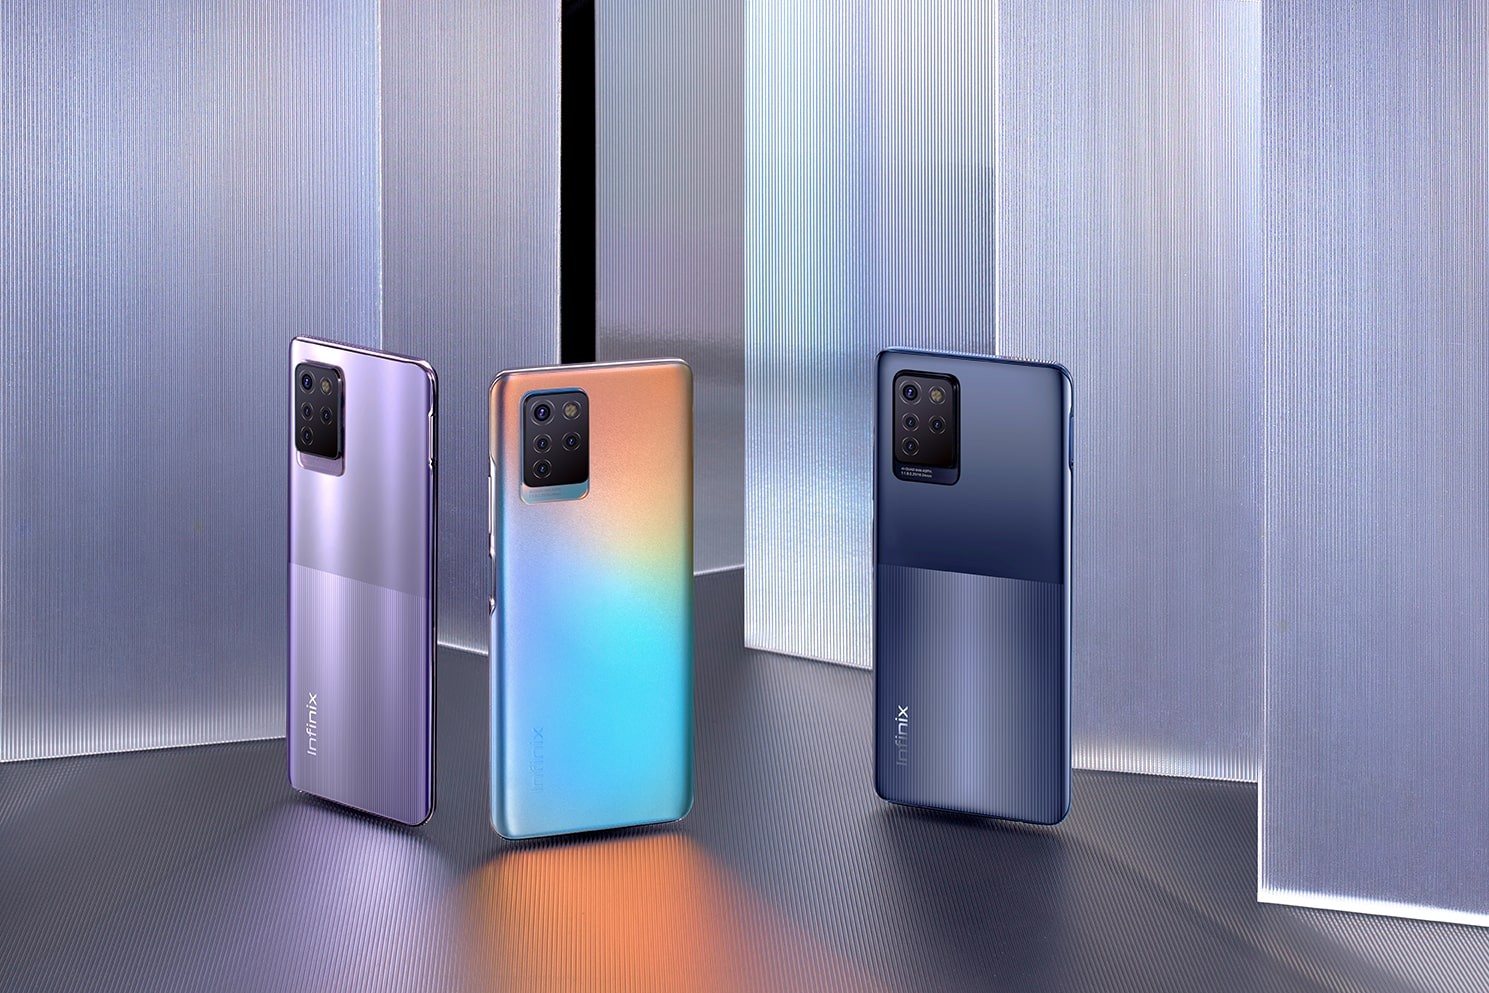 Infinix launches the NOTE 10 Pro Series